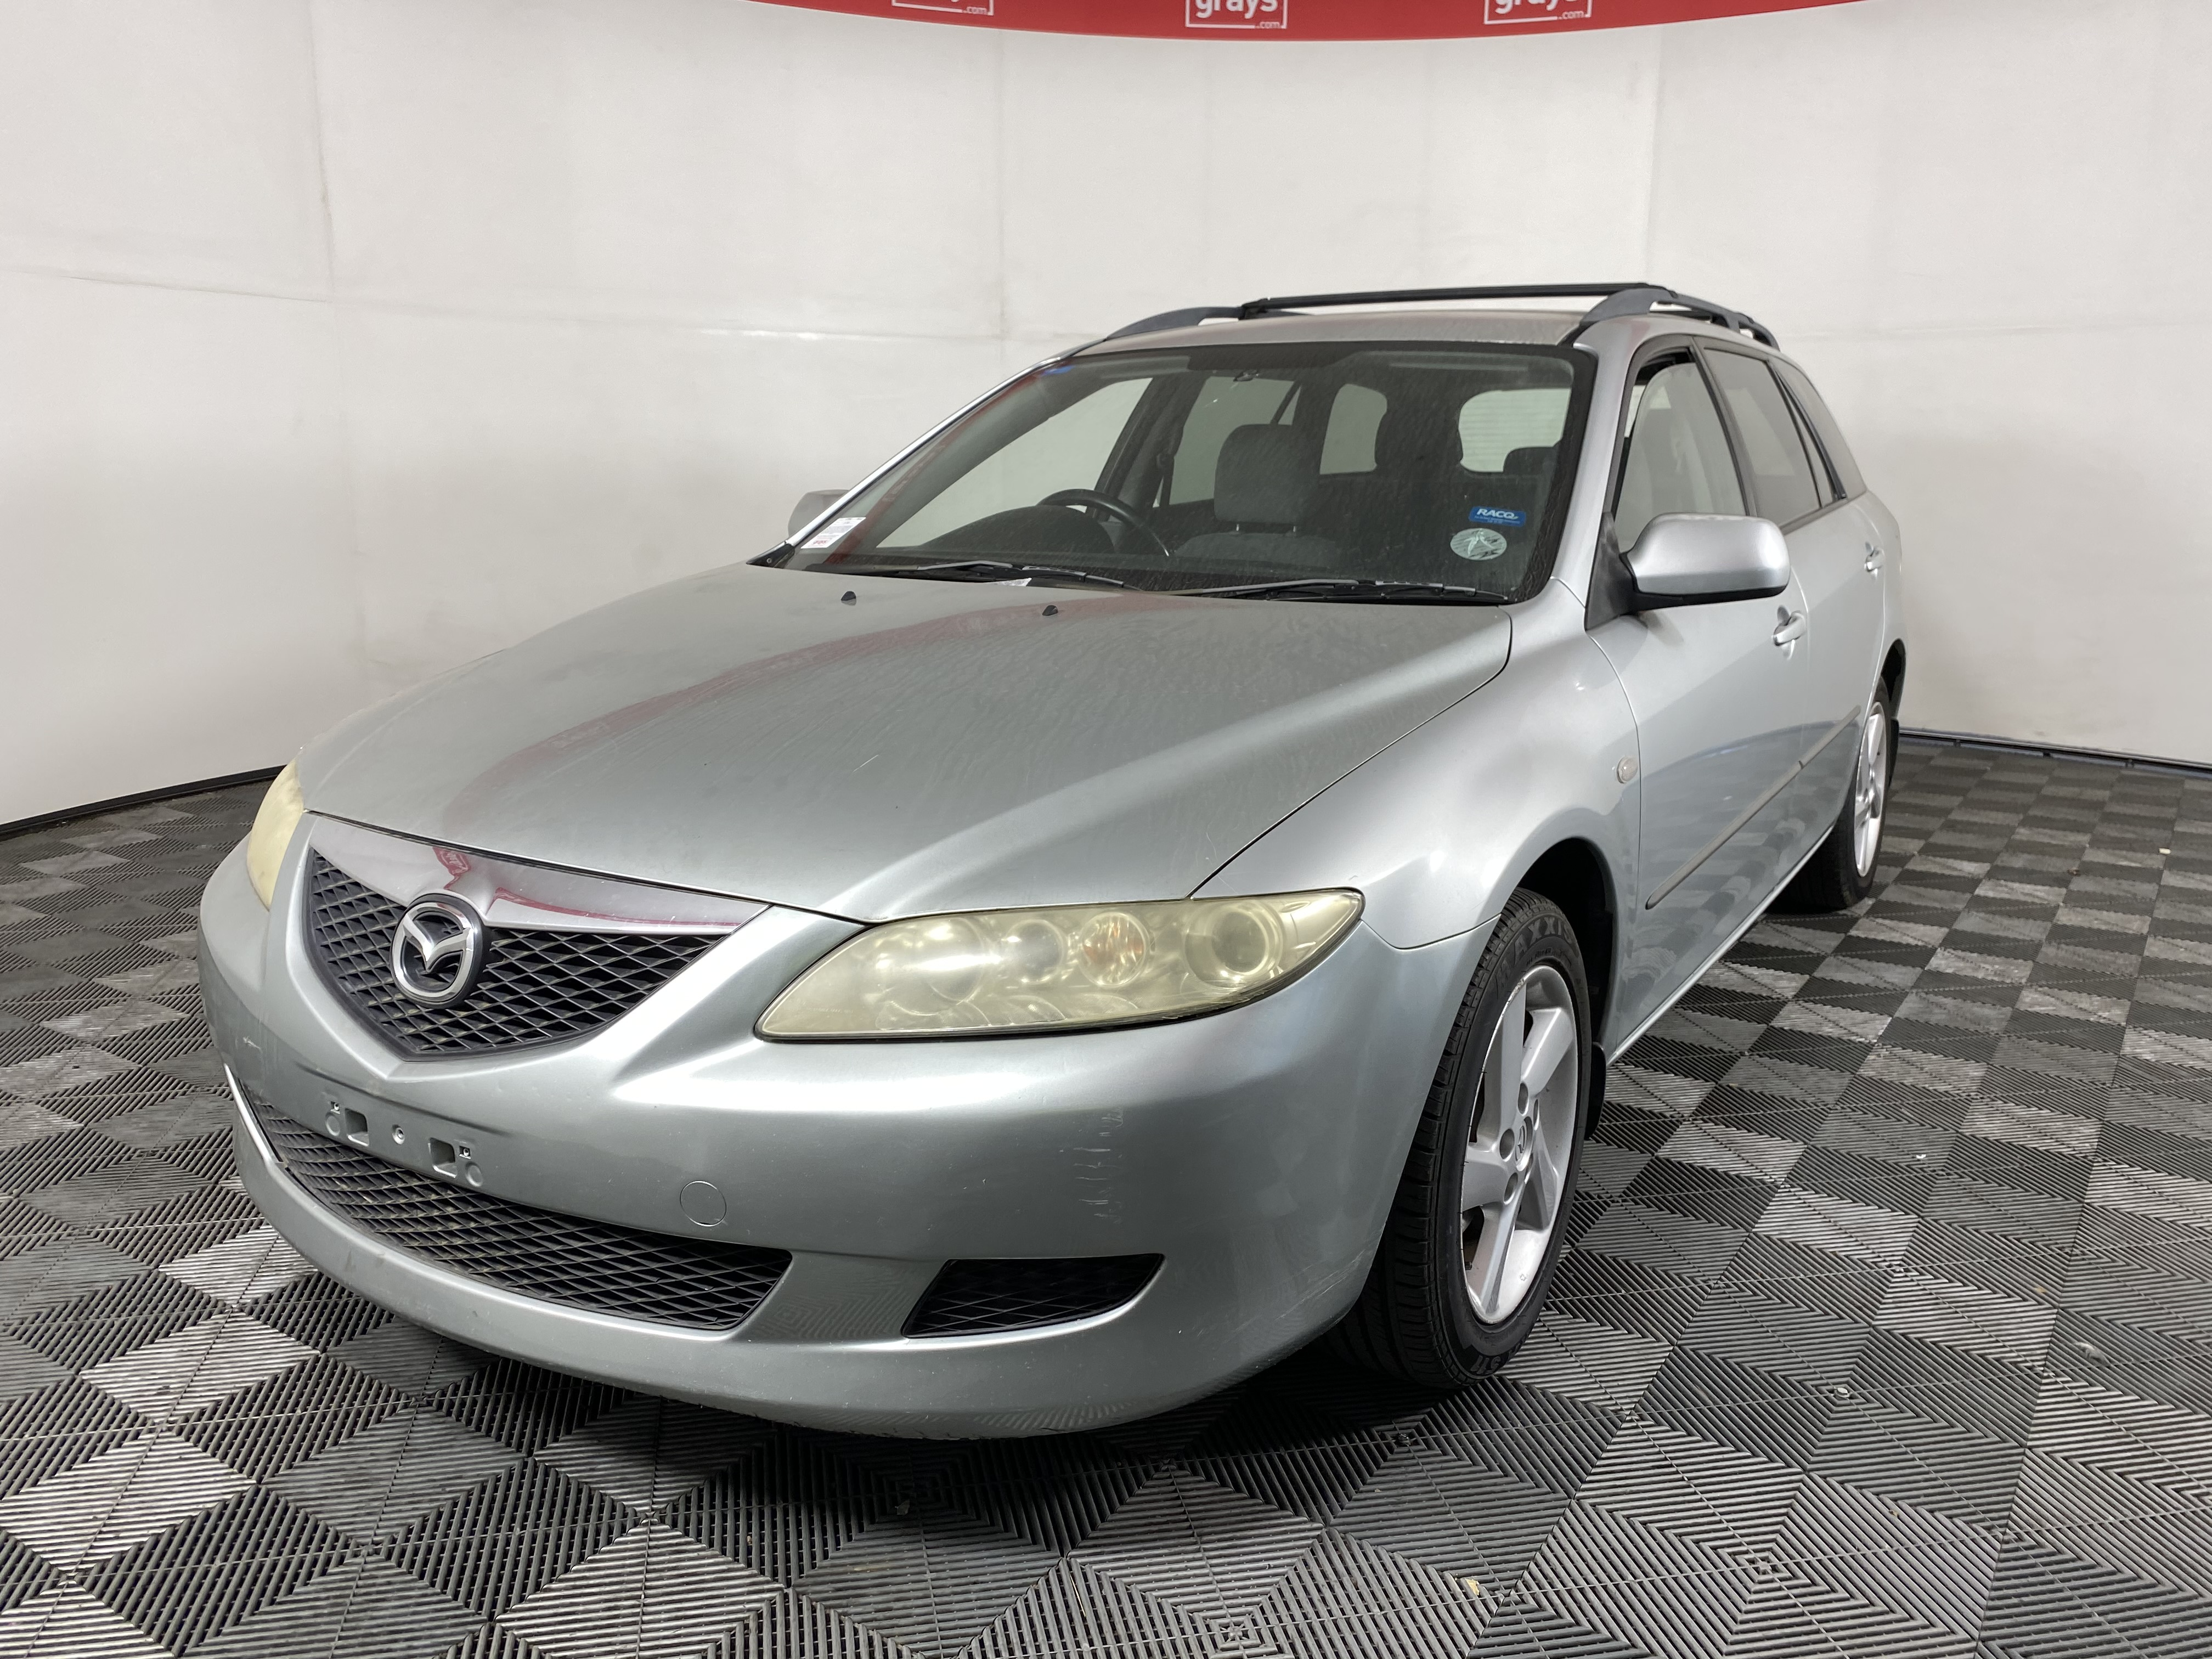 2003 Mazda 6 Classic GY Automatic Wagon (WOVR+INSPECTED)